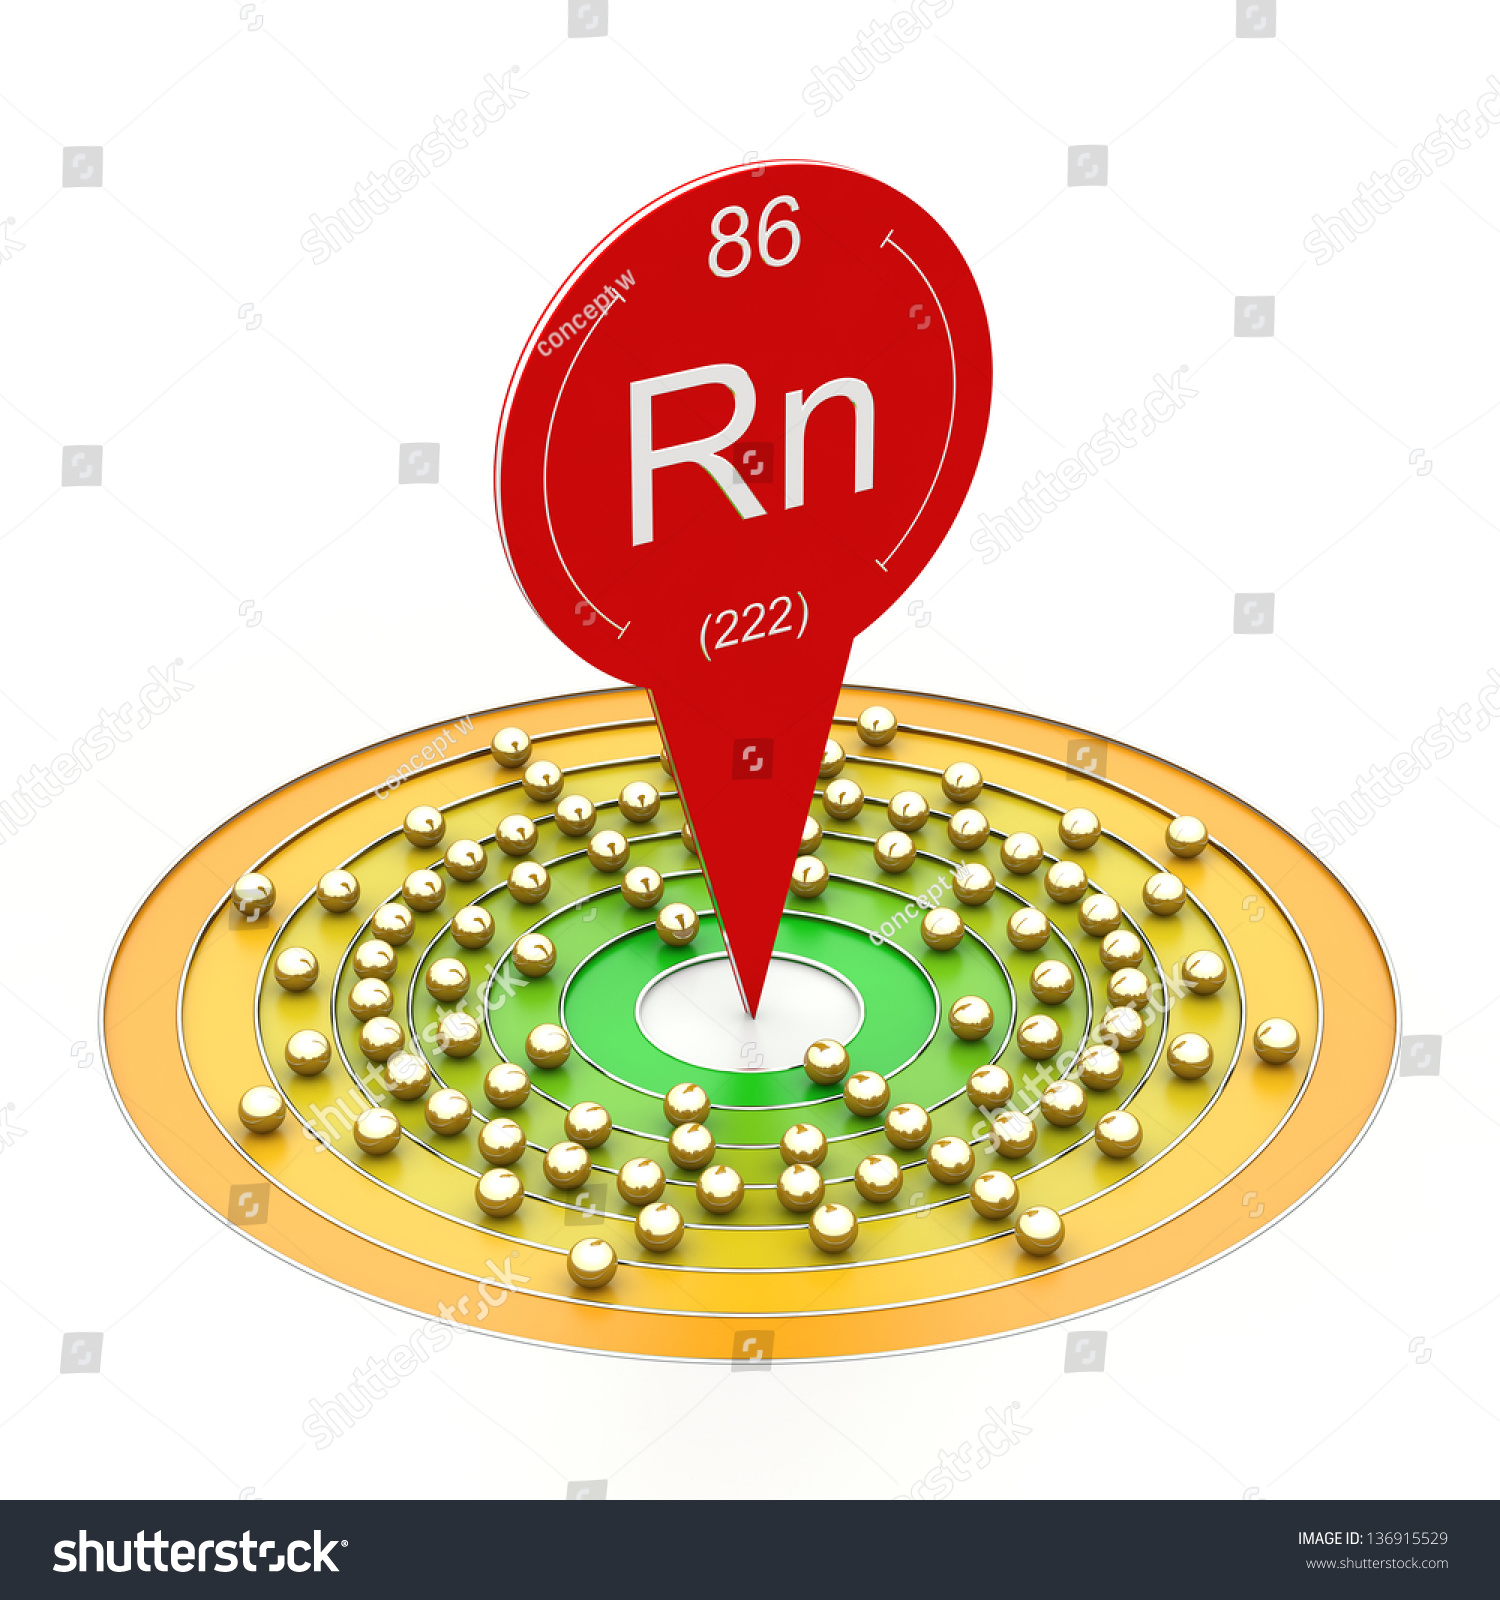 Periodic table radon gallery periodic table images rn element periodic table image collections periodic table images radon element periodic table electron configuration stock gamestrikefo Image collections